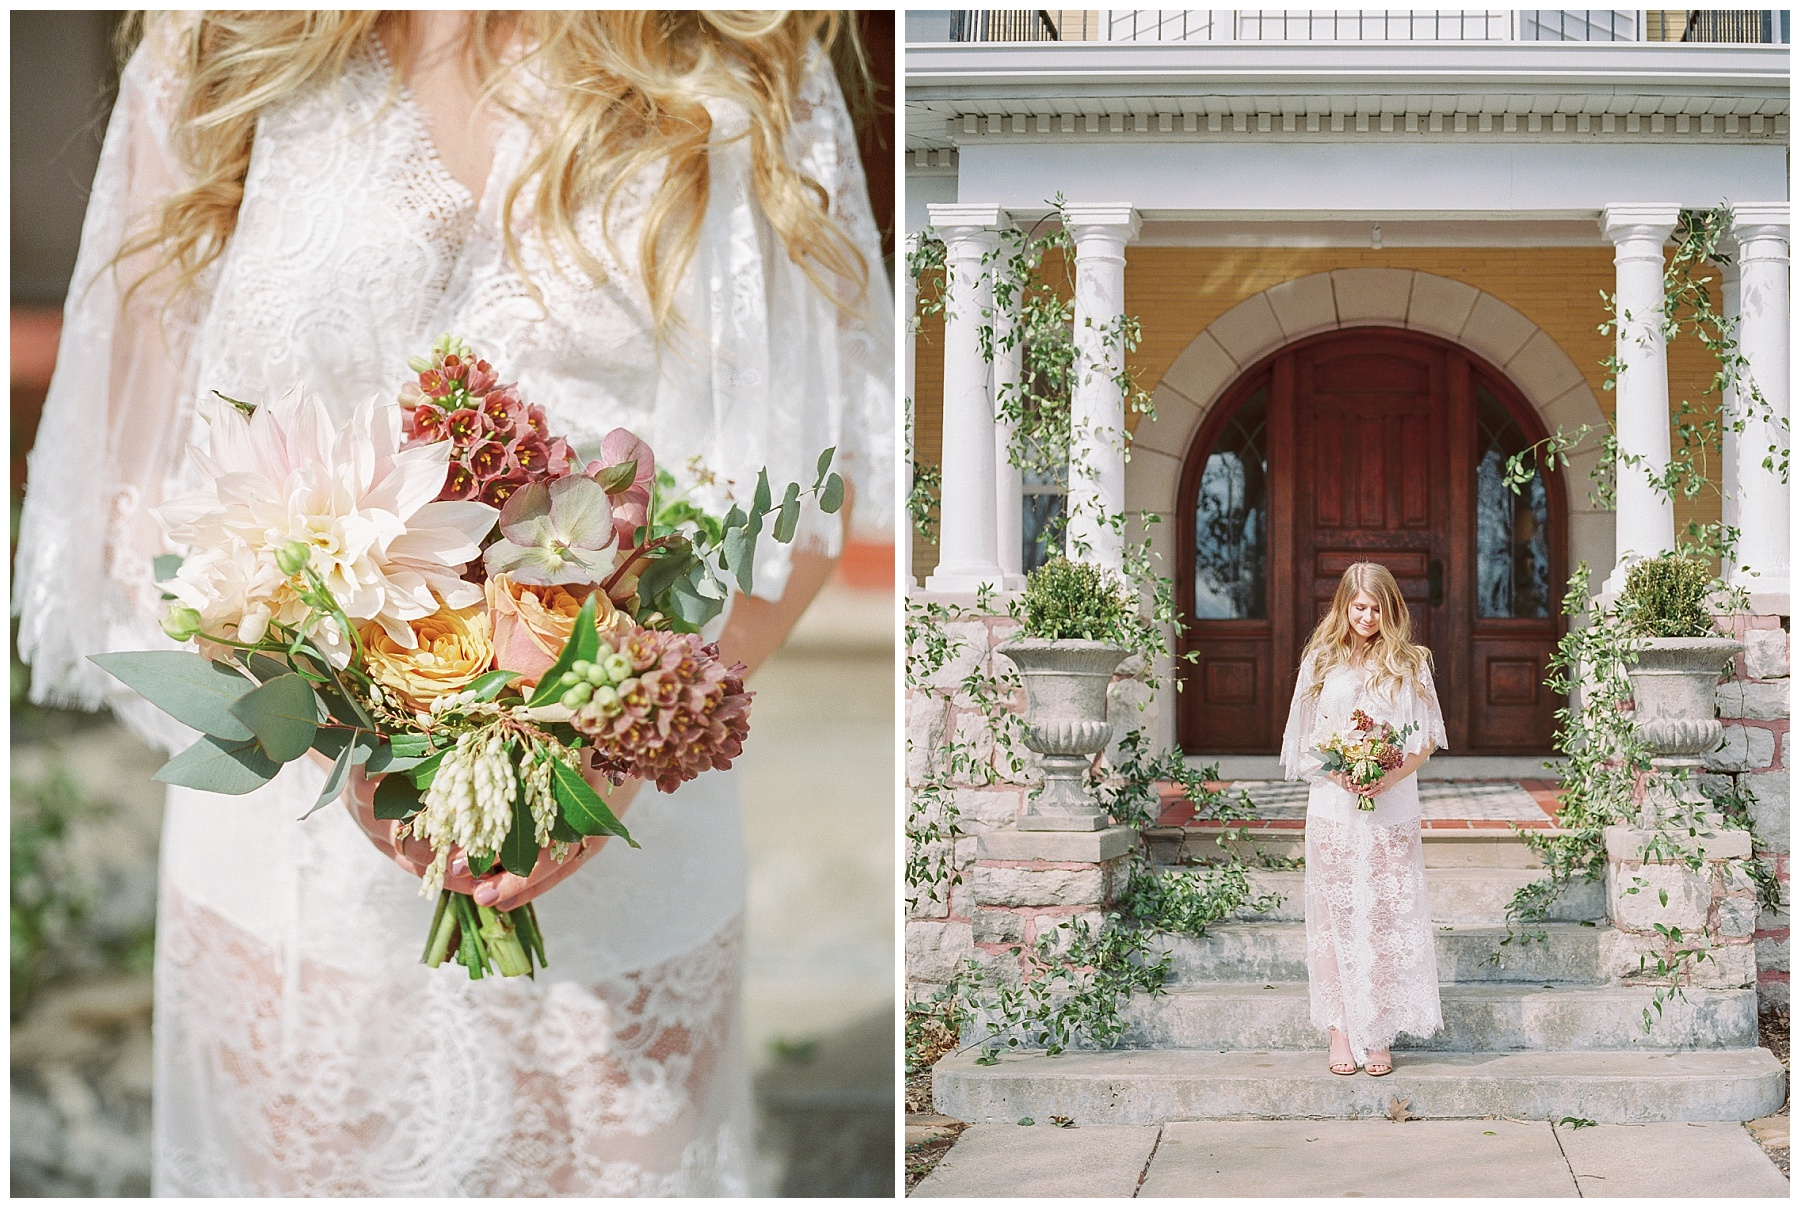 Natural, Intimate, and Organic Bridal Session on Steps of Century Old Bed and Breakfast by Kelsi Kliethermes Photography Best Missouri and Maui Wedding Photographer_0001.jpg